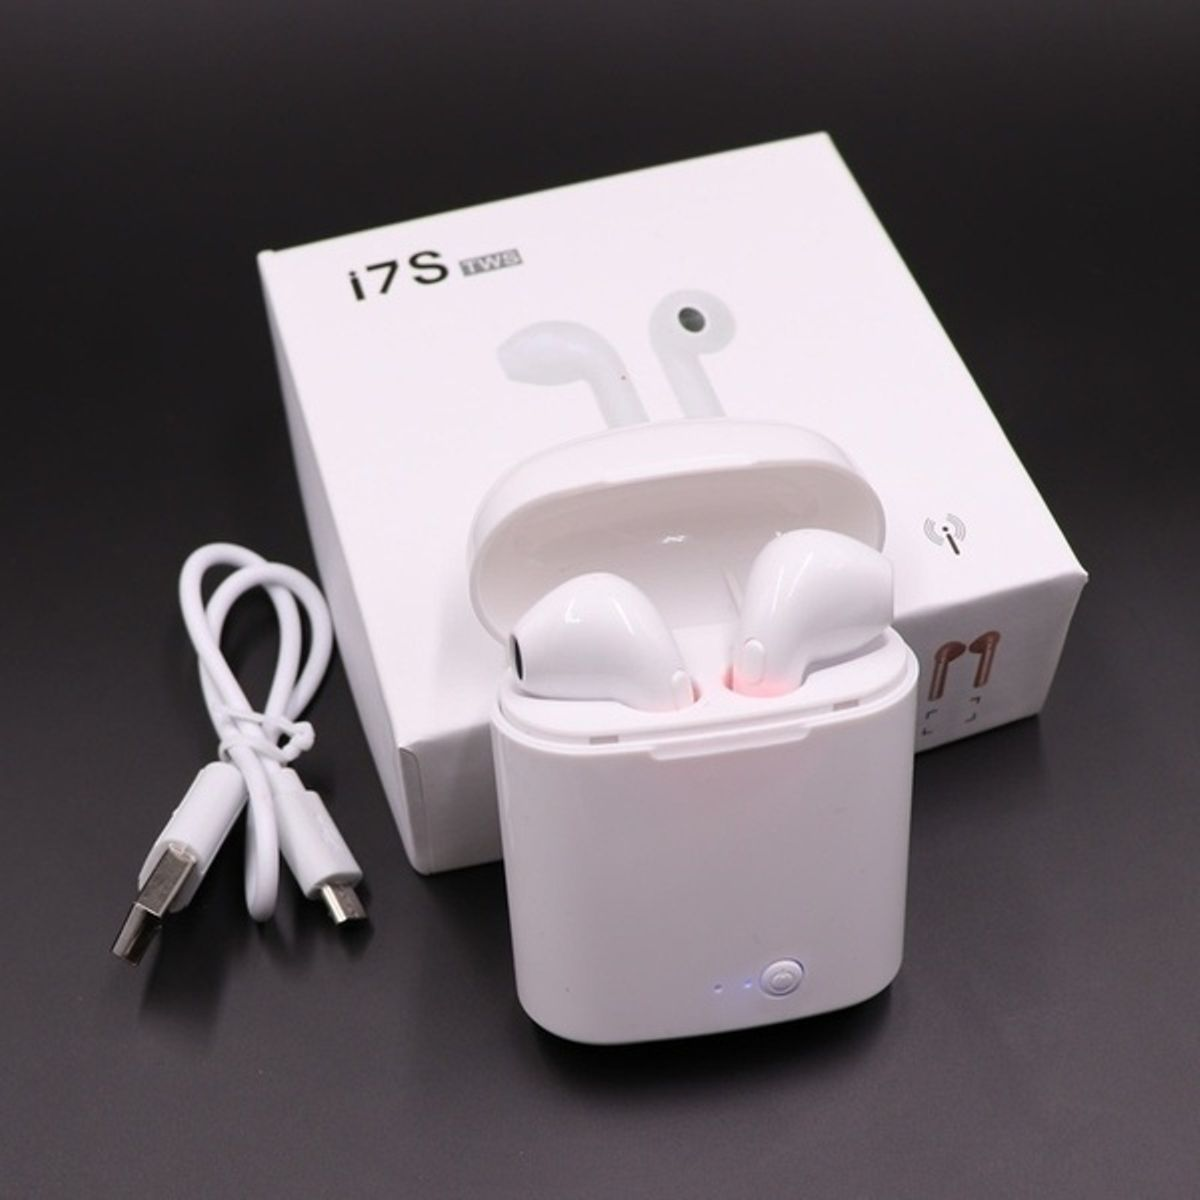 Original i7s TWS Wireless Bluetooth Earphones Top Quality Headphones Headset Dual Side Call Earbuds for iPhone Android Xiaomi i7 i7s i9 i9s i10 i11 i12 Universally Compatible for All Bluetooth Devices